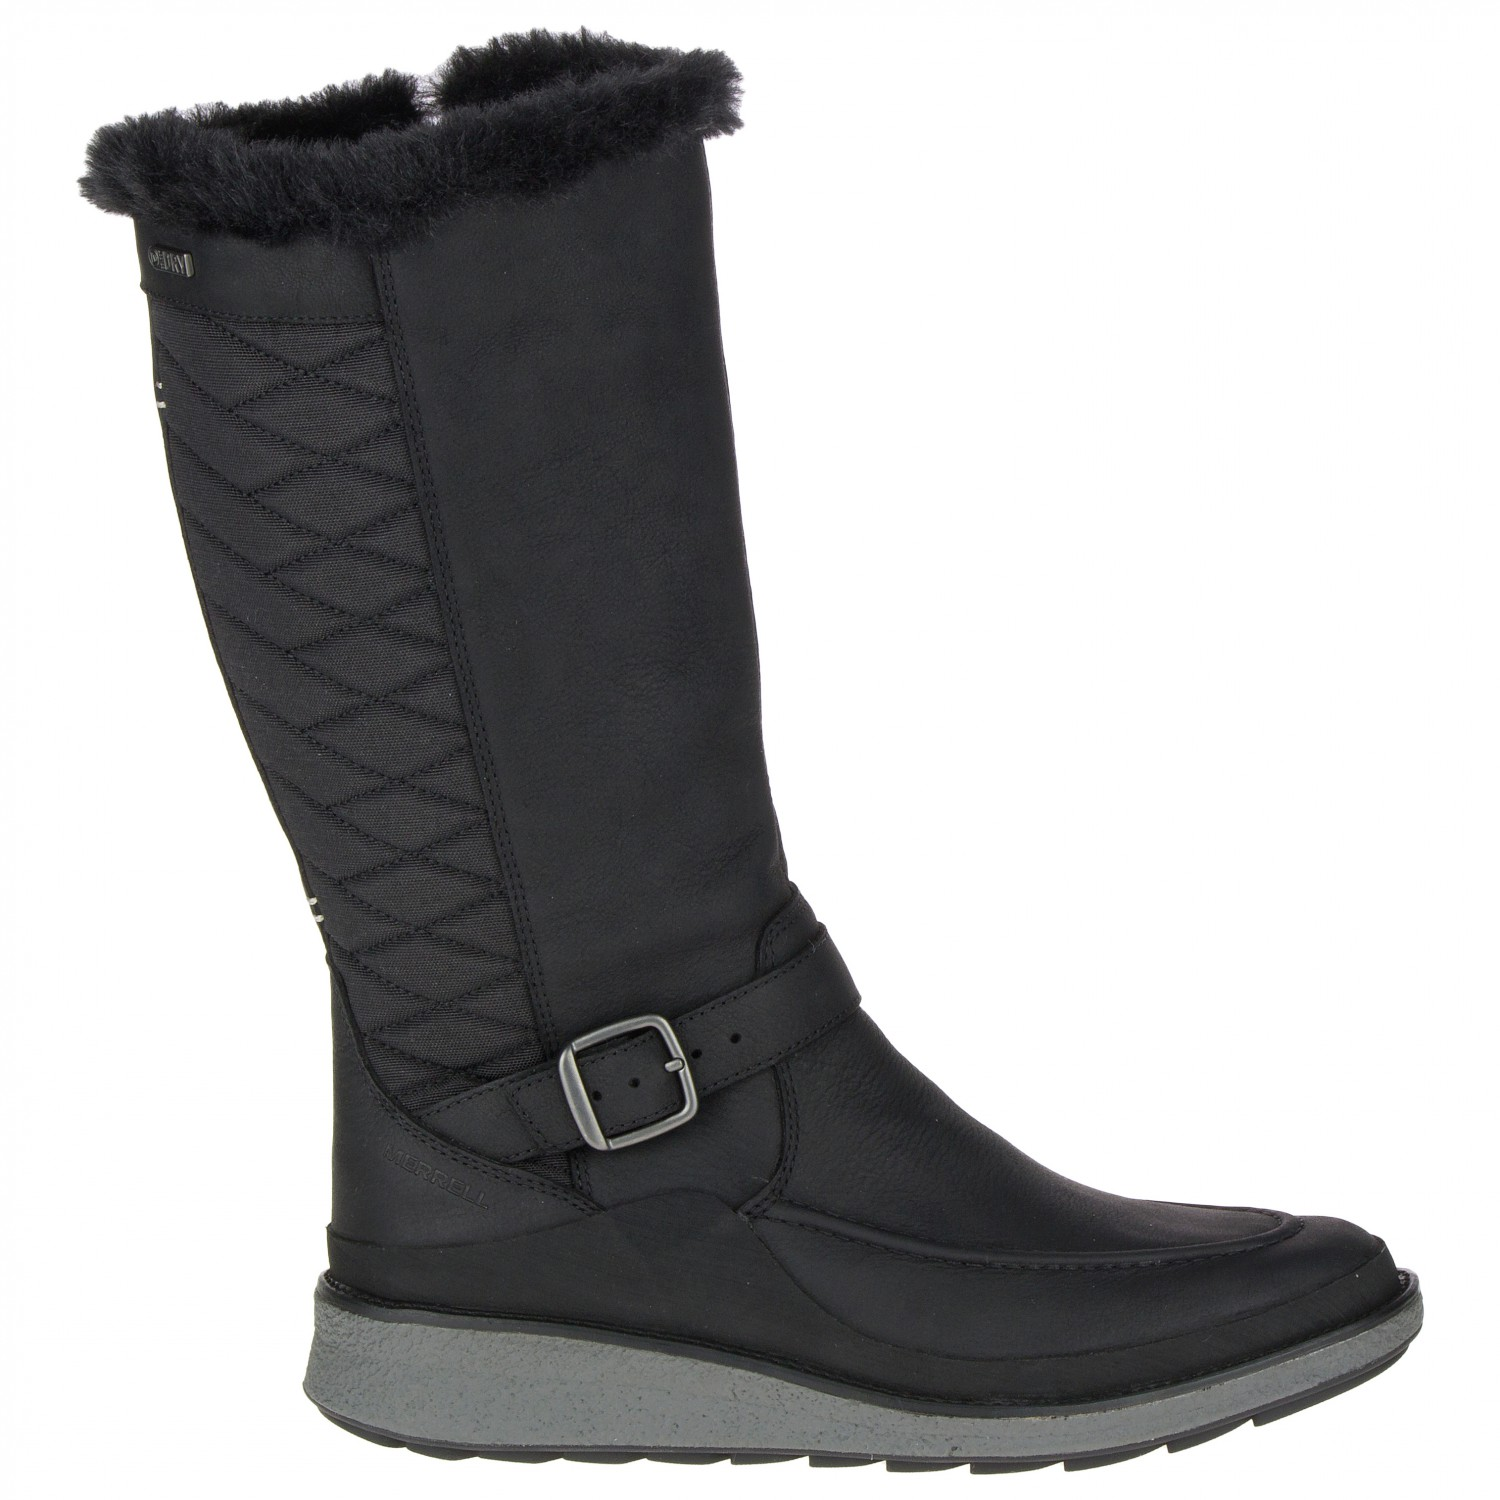 6a90ce84b5 Merrell - Women's Tremblant Ezra Tall Polar Waterproof - Winter boots -  Black | 42,5 (EU)